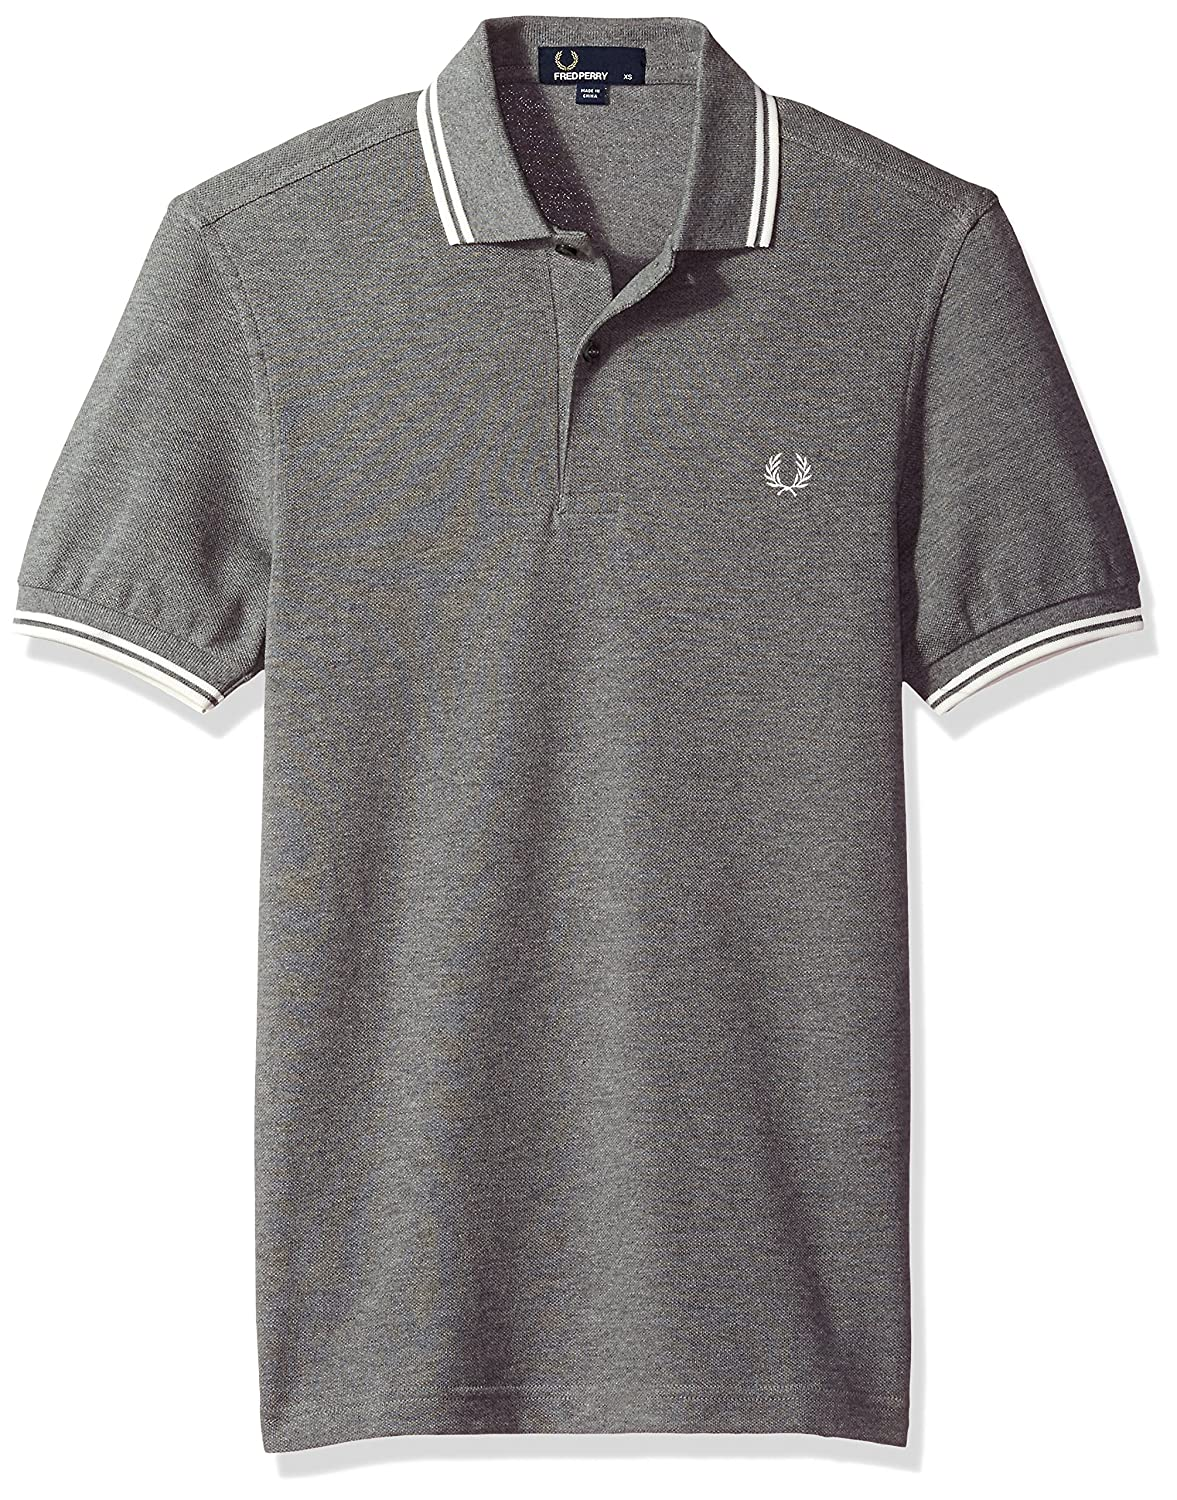 Fred Perry Fp Twin Tipped, Polo para Hombre, Multicolor (Greymrl/Snwwht), Small: Amazon.es: Ropa y accesorios